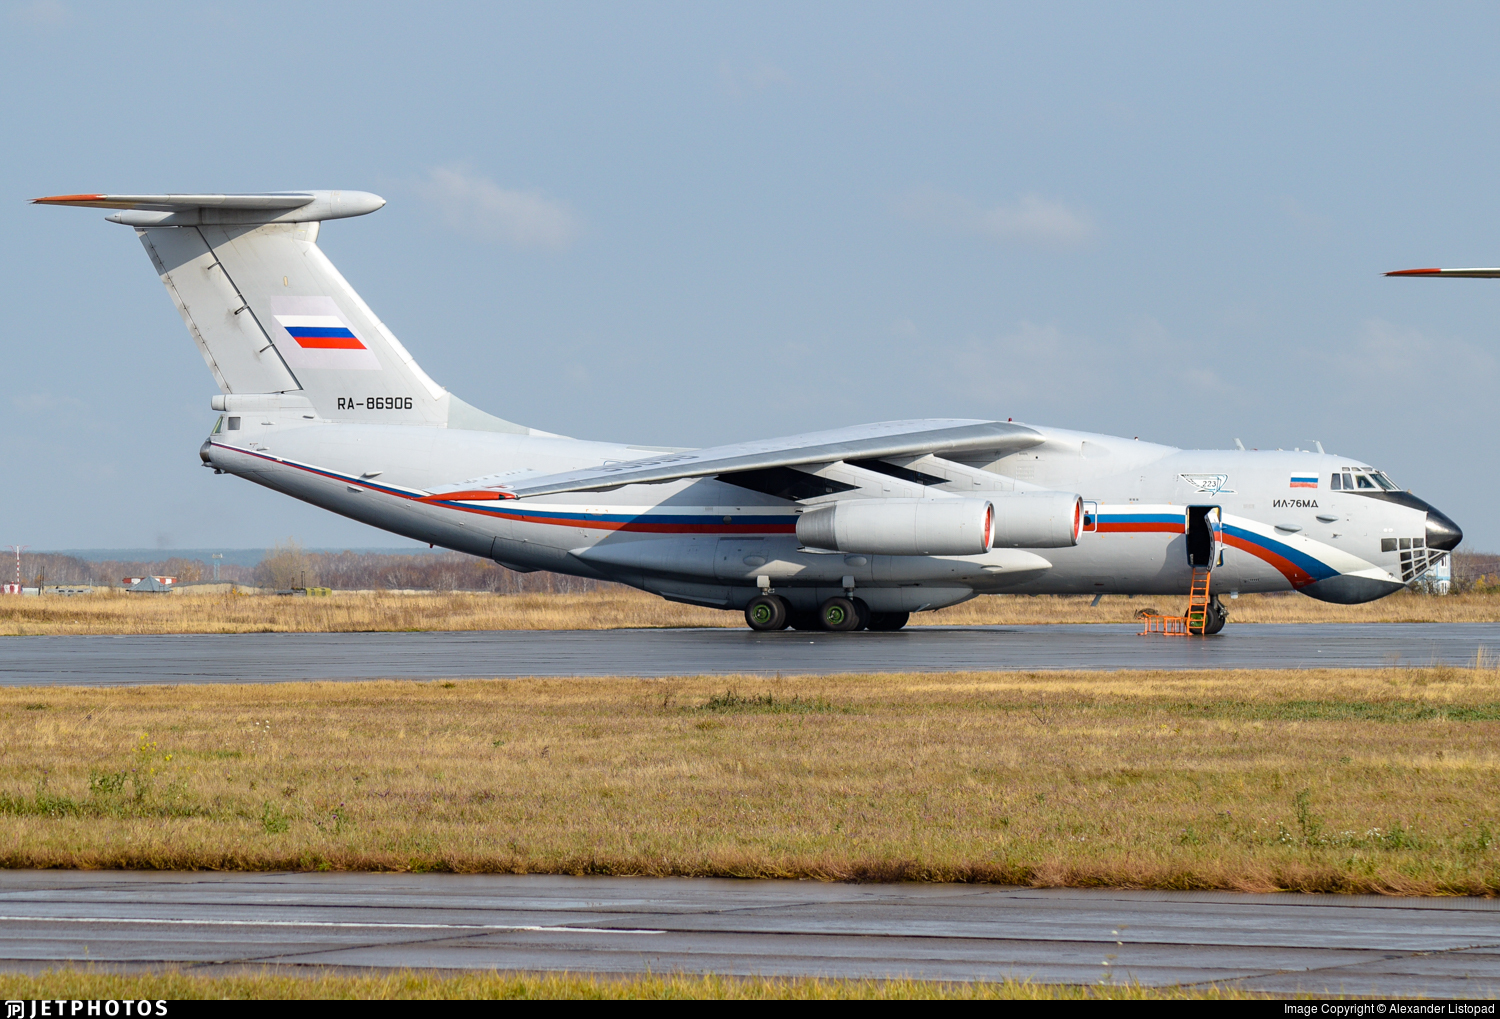 RA-86906 - Ilyushin IL-76MD - Russia - 223rd Flight Unit State Airline